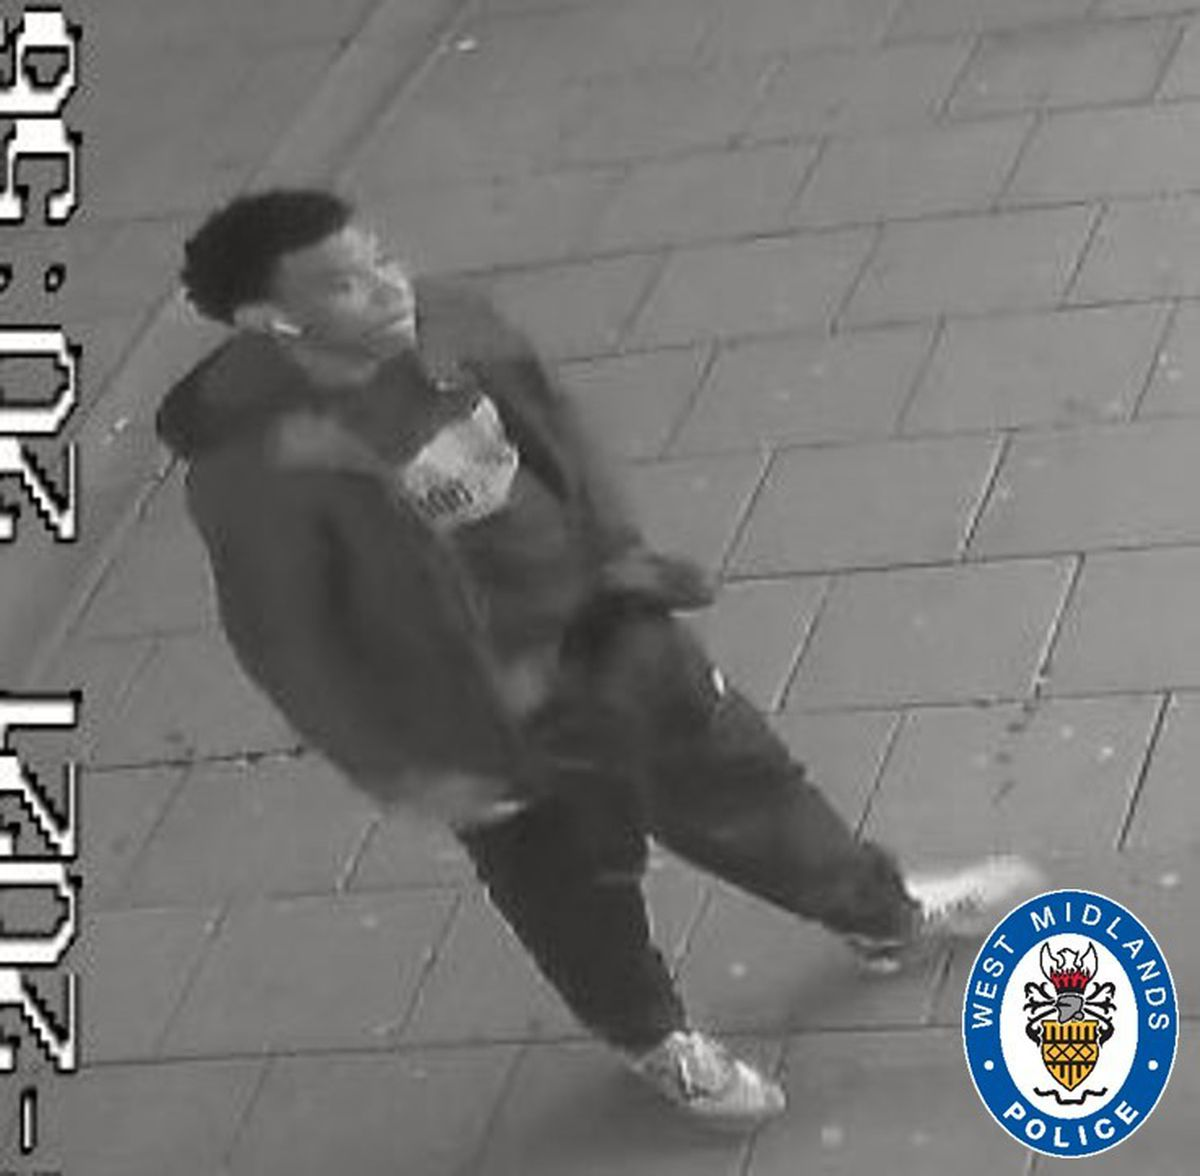 West Midlands Police have asked for anyone with information on who this man is to get in touch (Image by West Midlands Police)